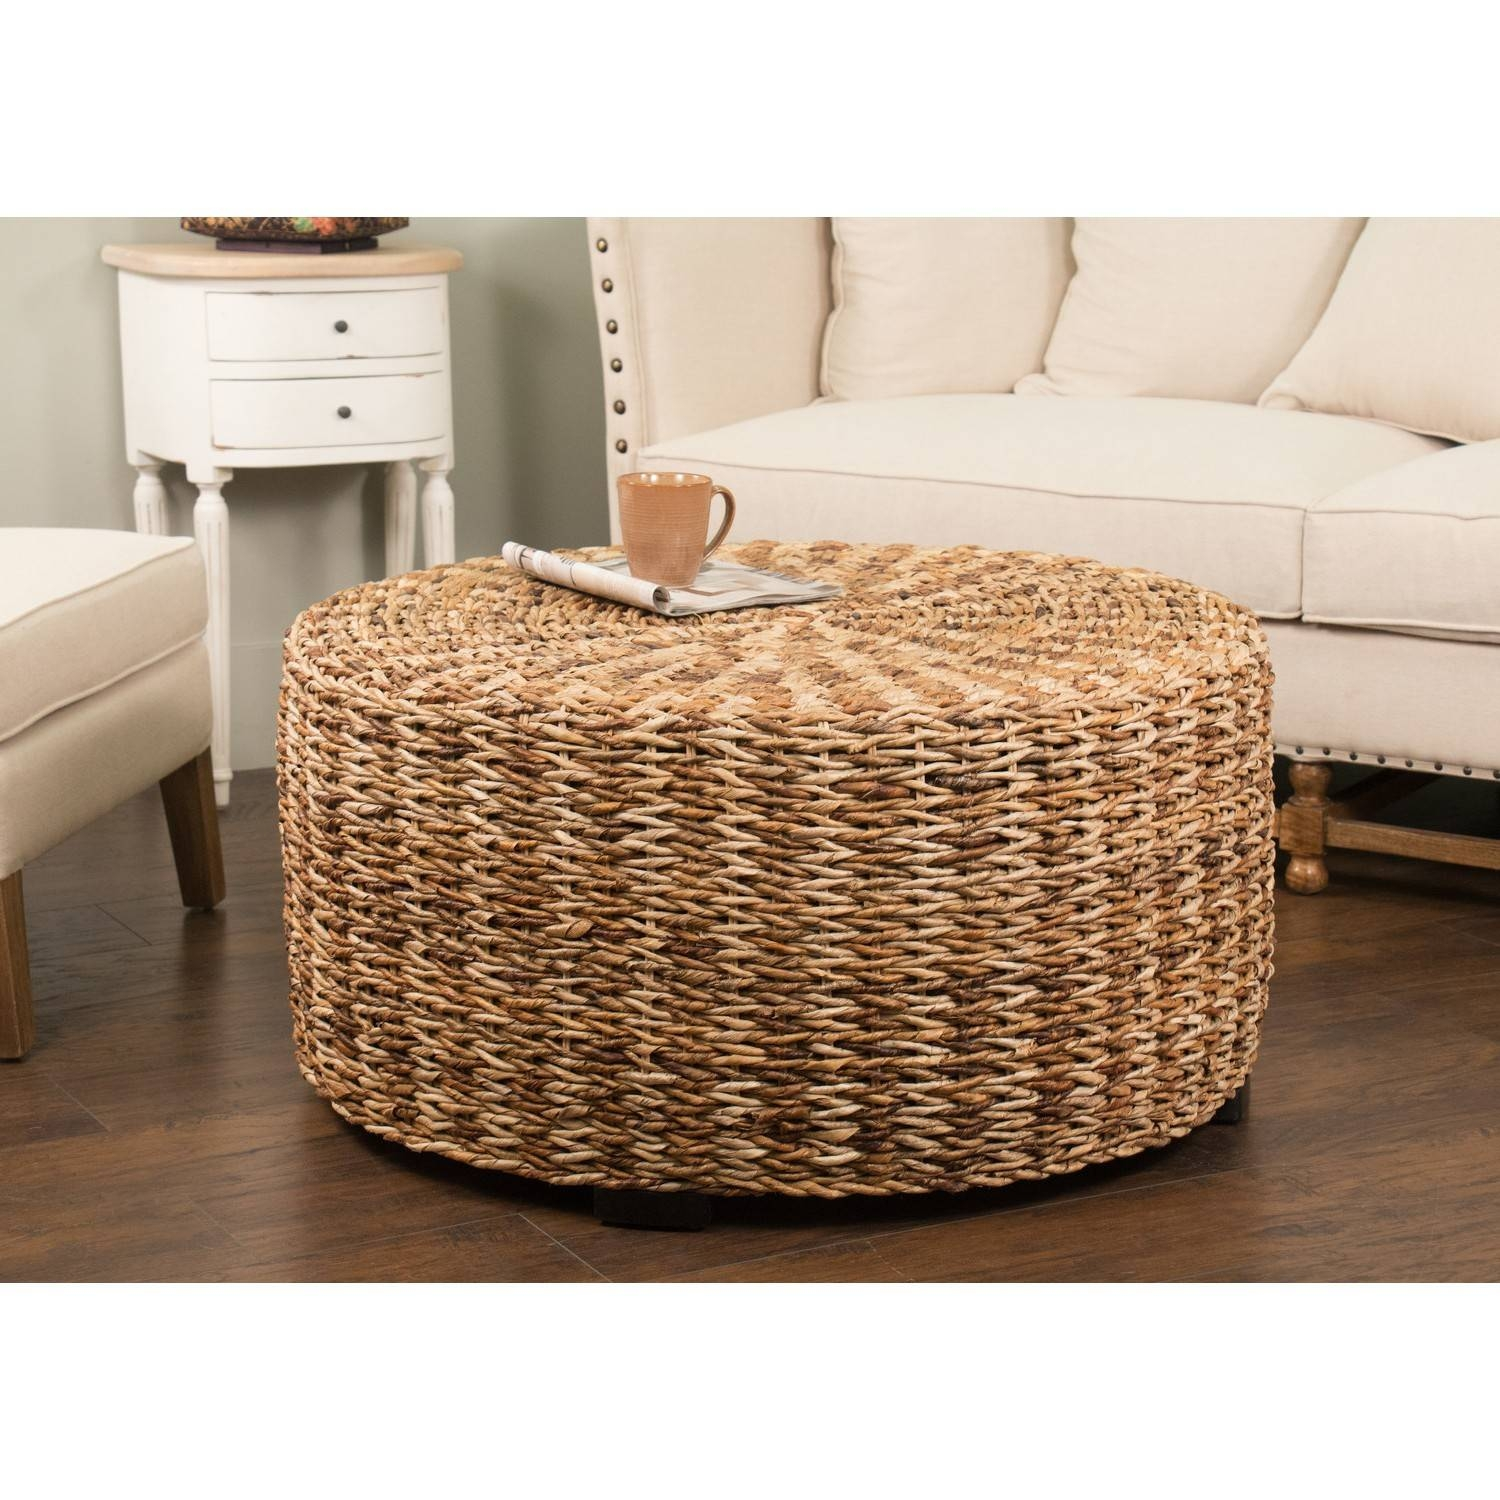 Round Seagrass Coffee Table | Idi Design regarding Round Woven Coffee Tables (Image 23 of 30)